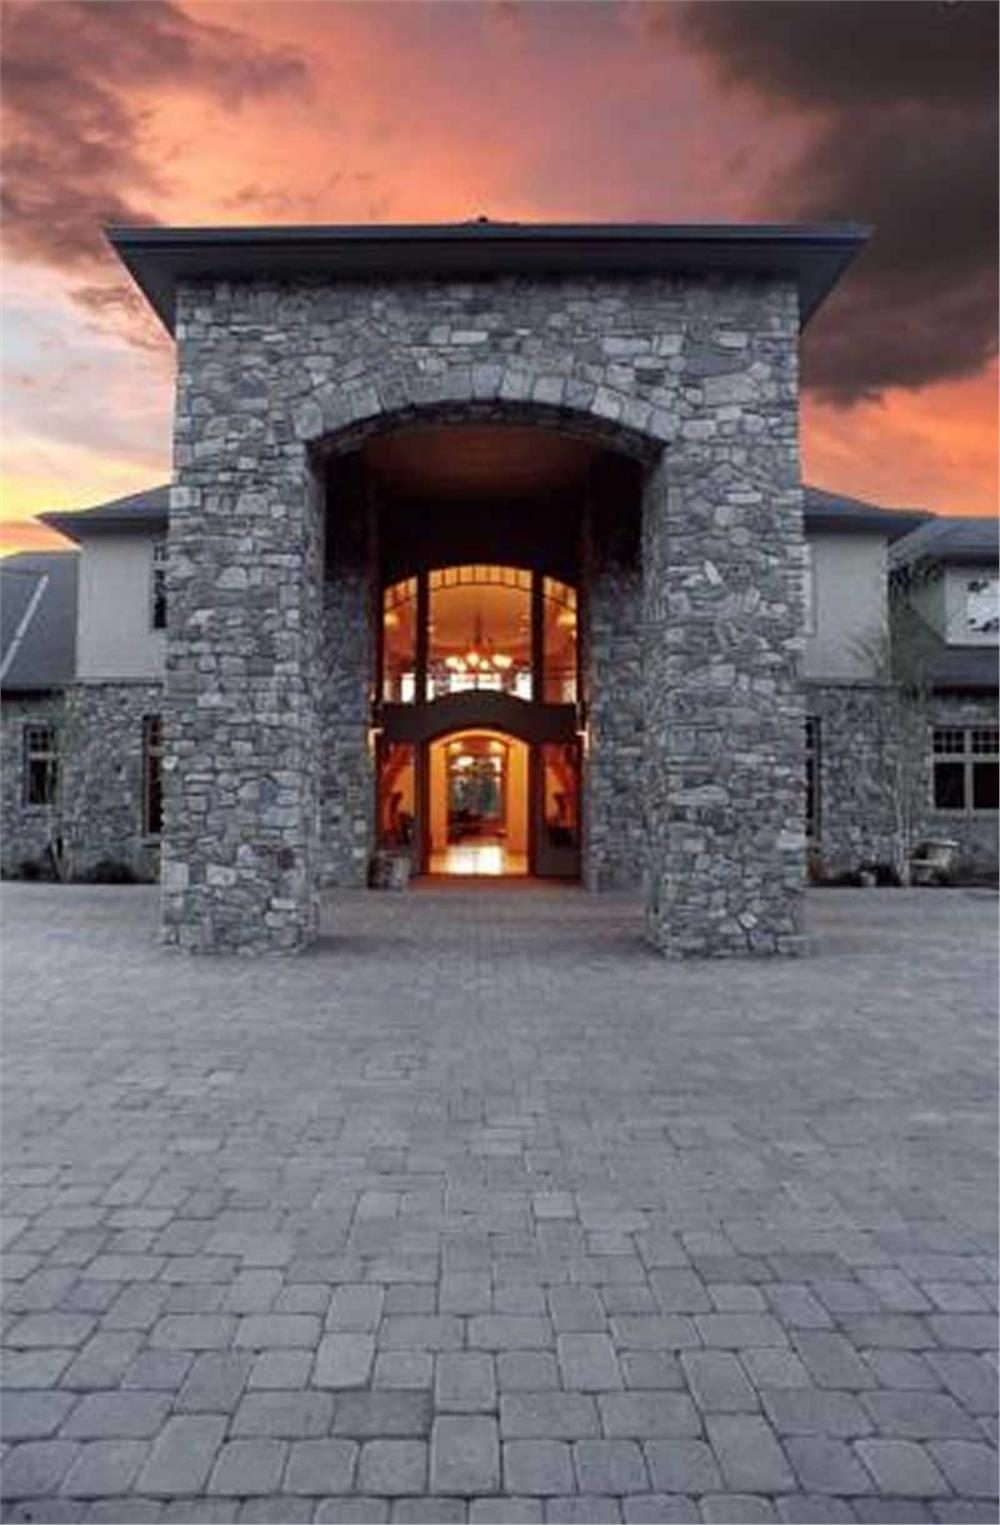 This image shows the entrance to this extraordinary home.